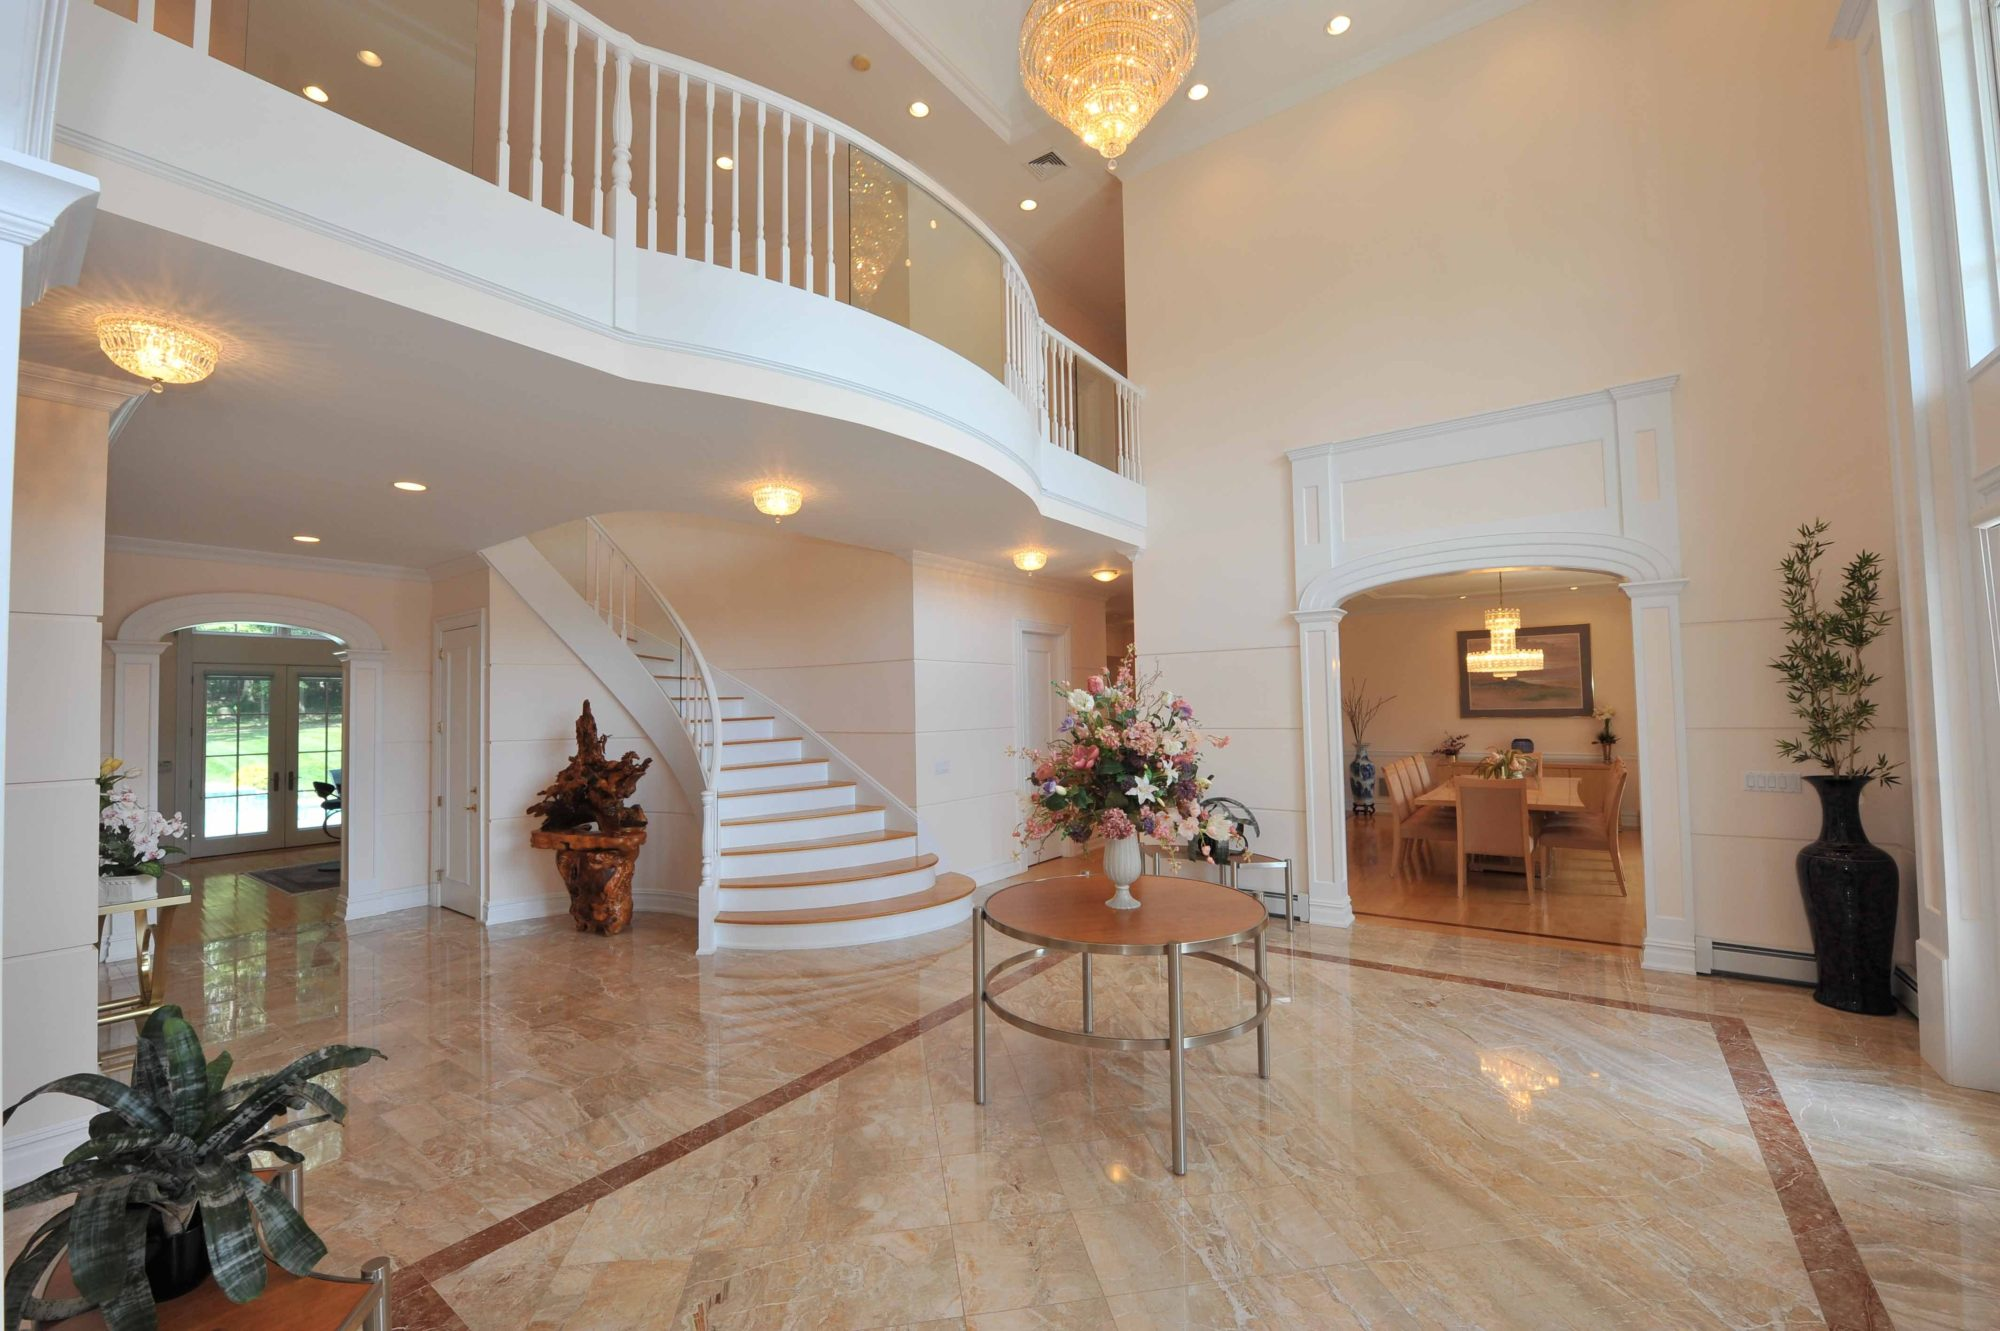 Beautiful mediterranean style villa in new jersey 2 for Beautiful interior decoration of houses